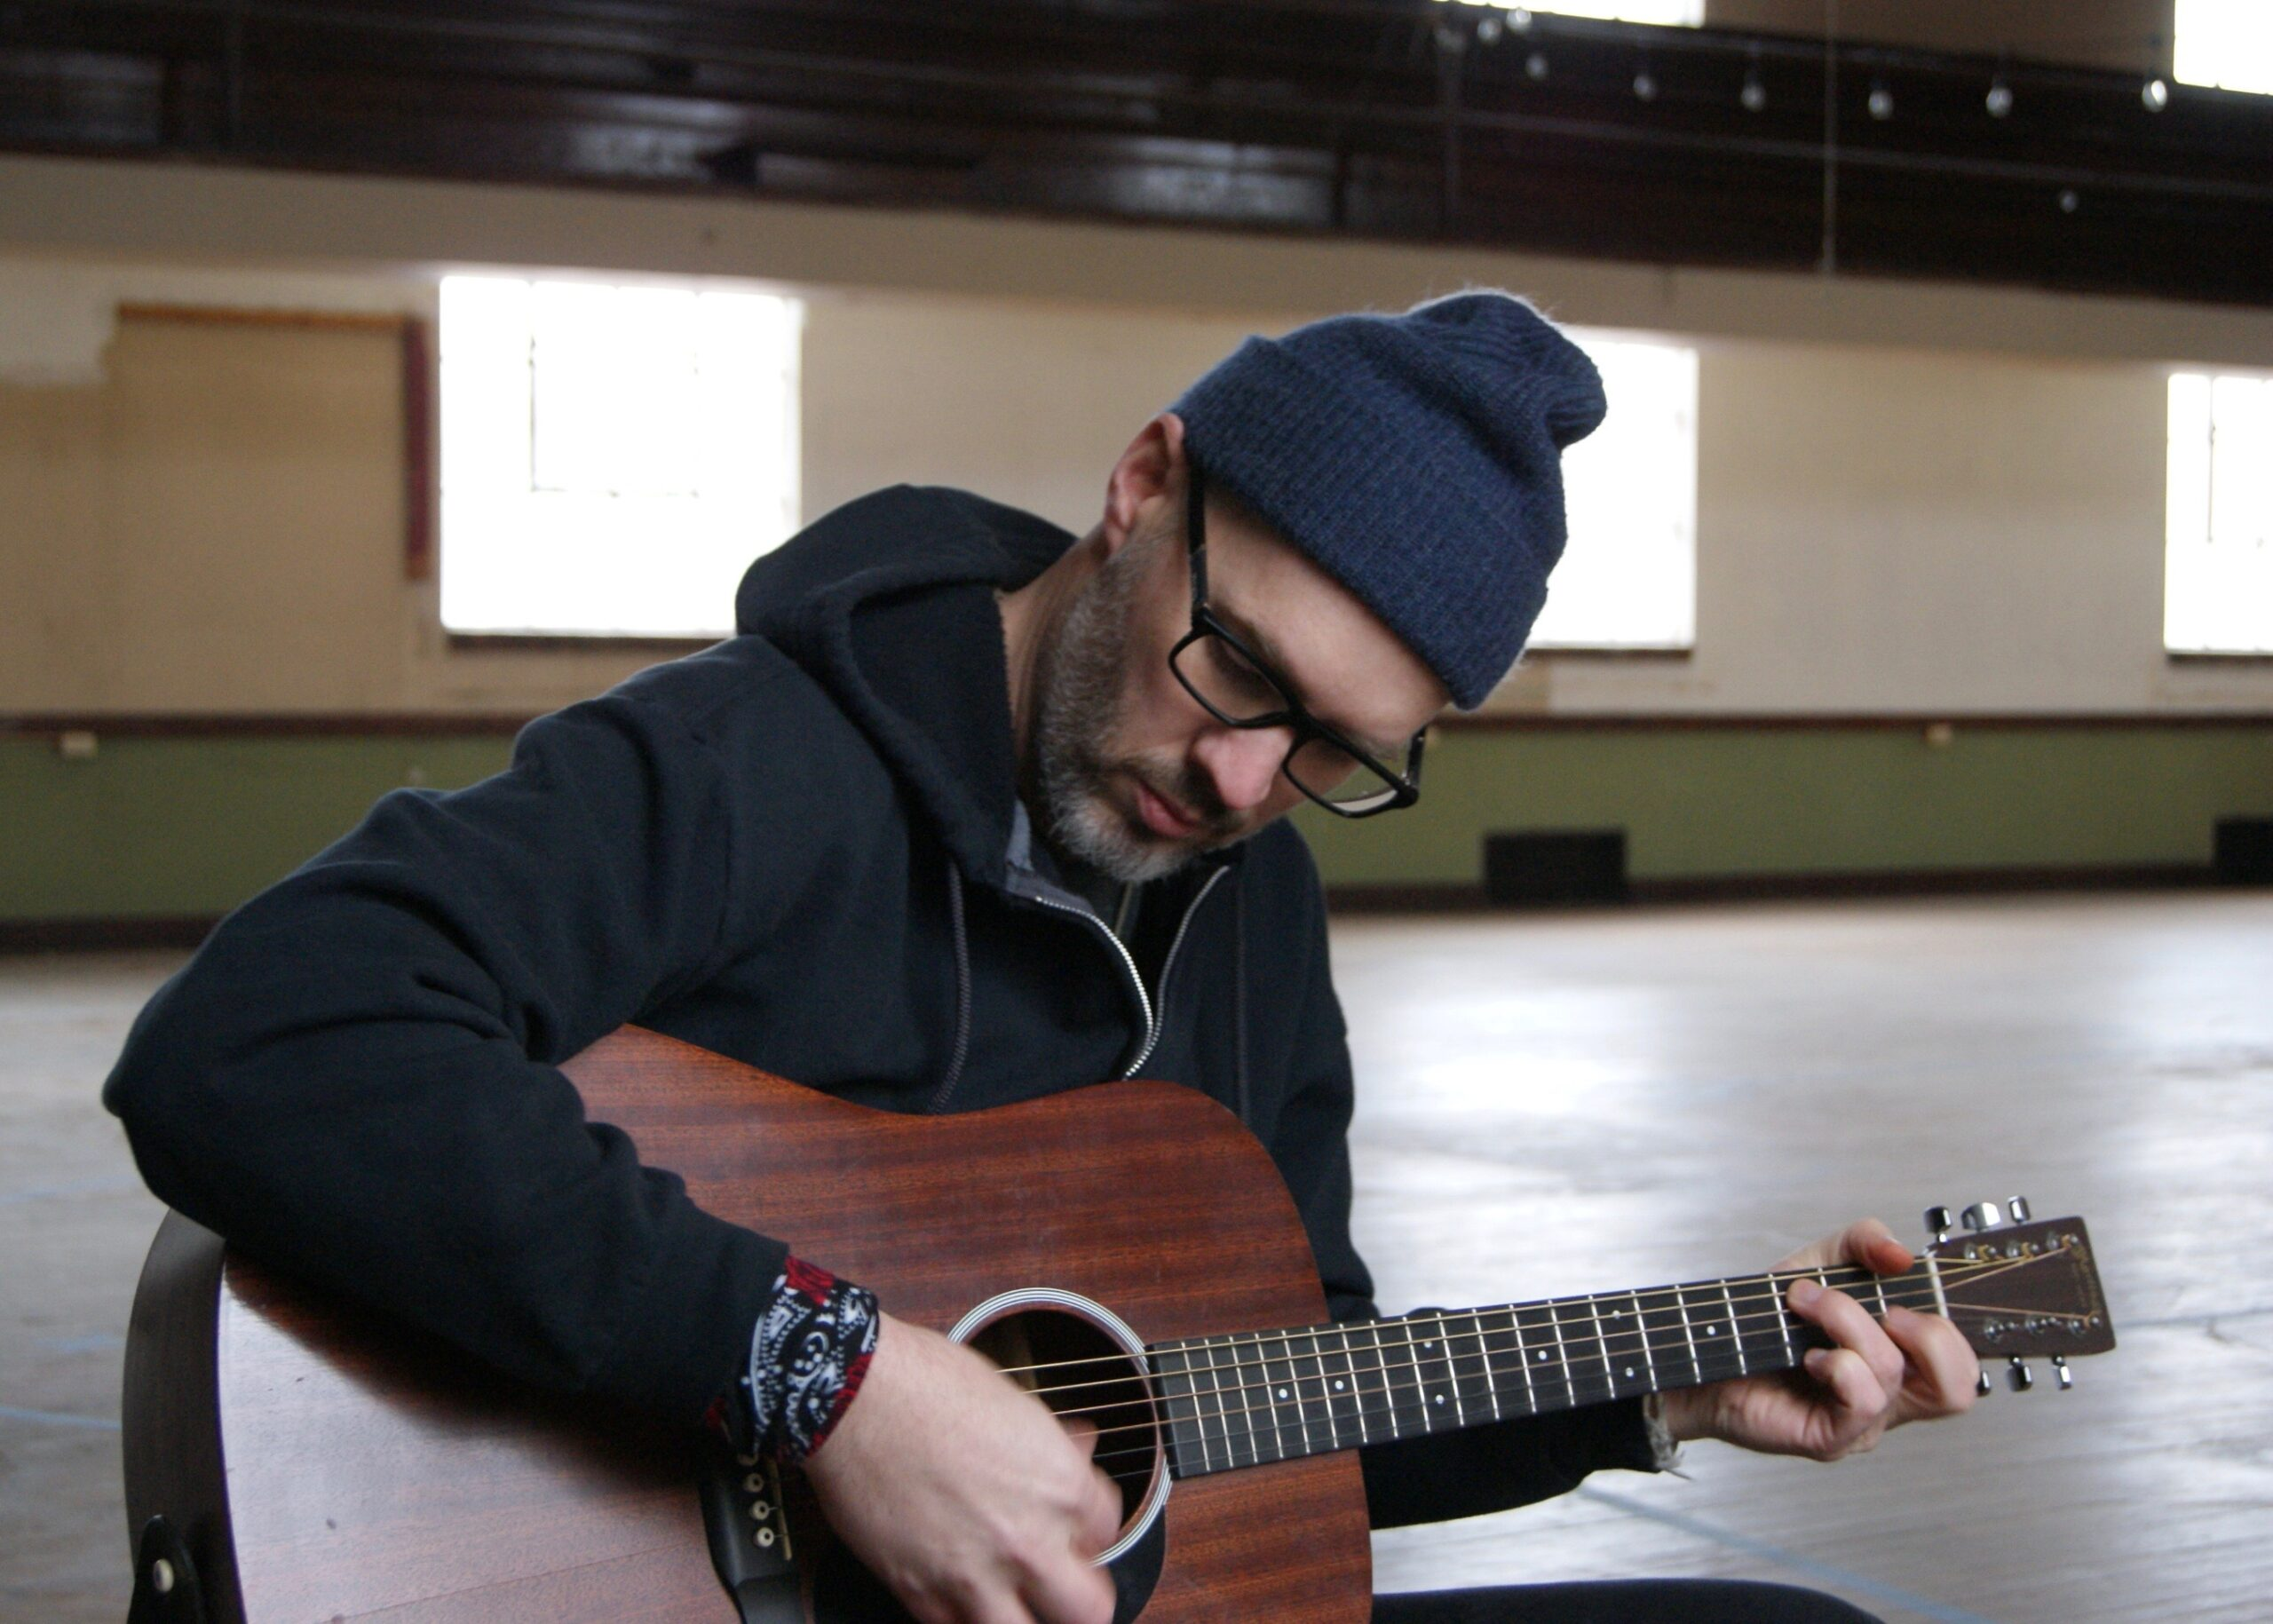 Musical artist Nate Boots with Guitar